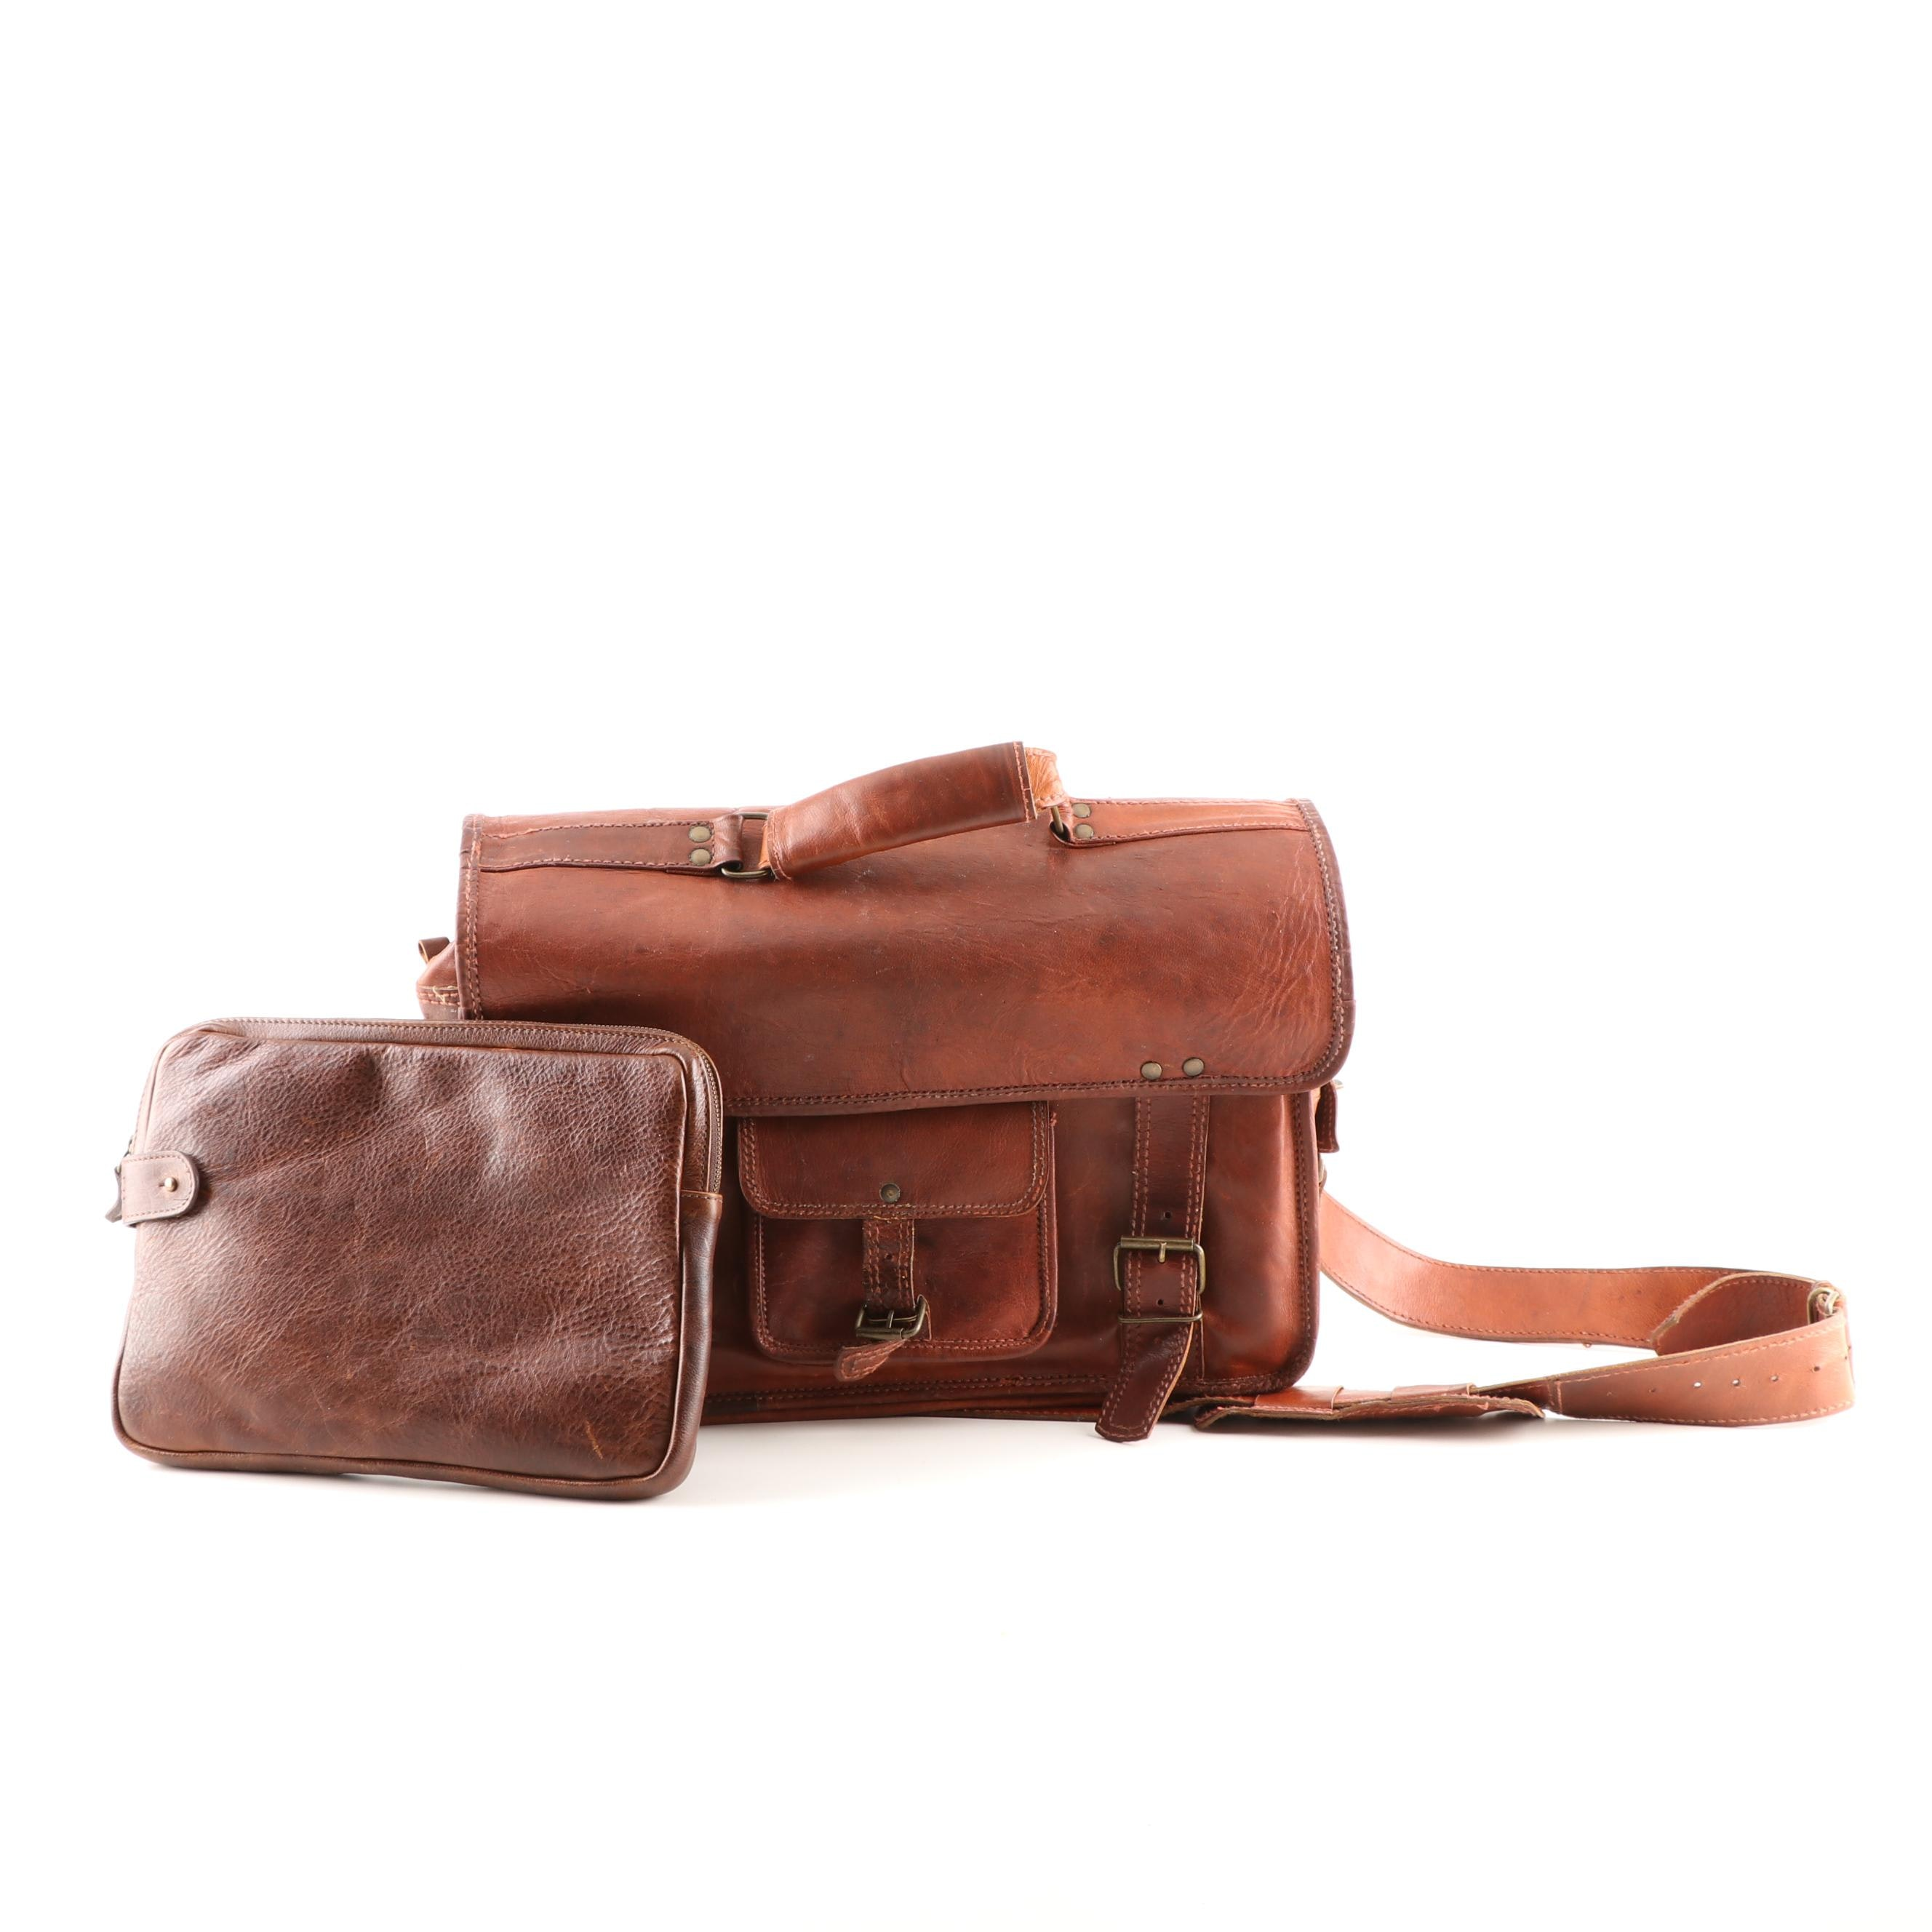 Moore & Giles Brown Leather Laptop Case with Brown Leather Messenger Bag